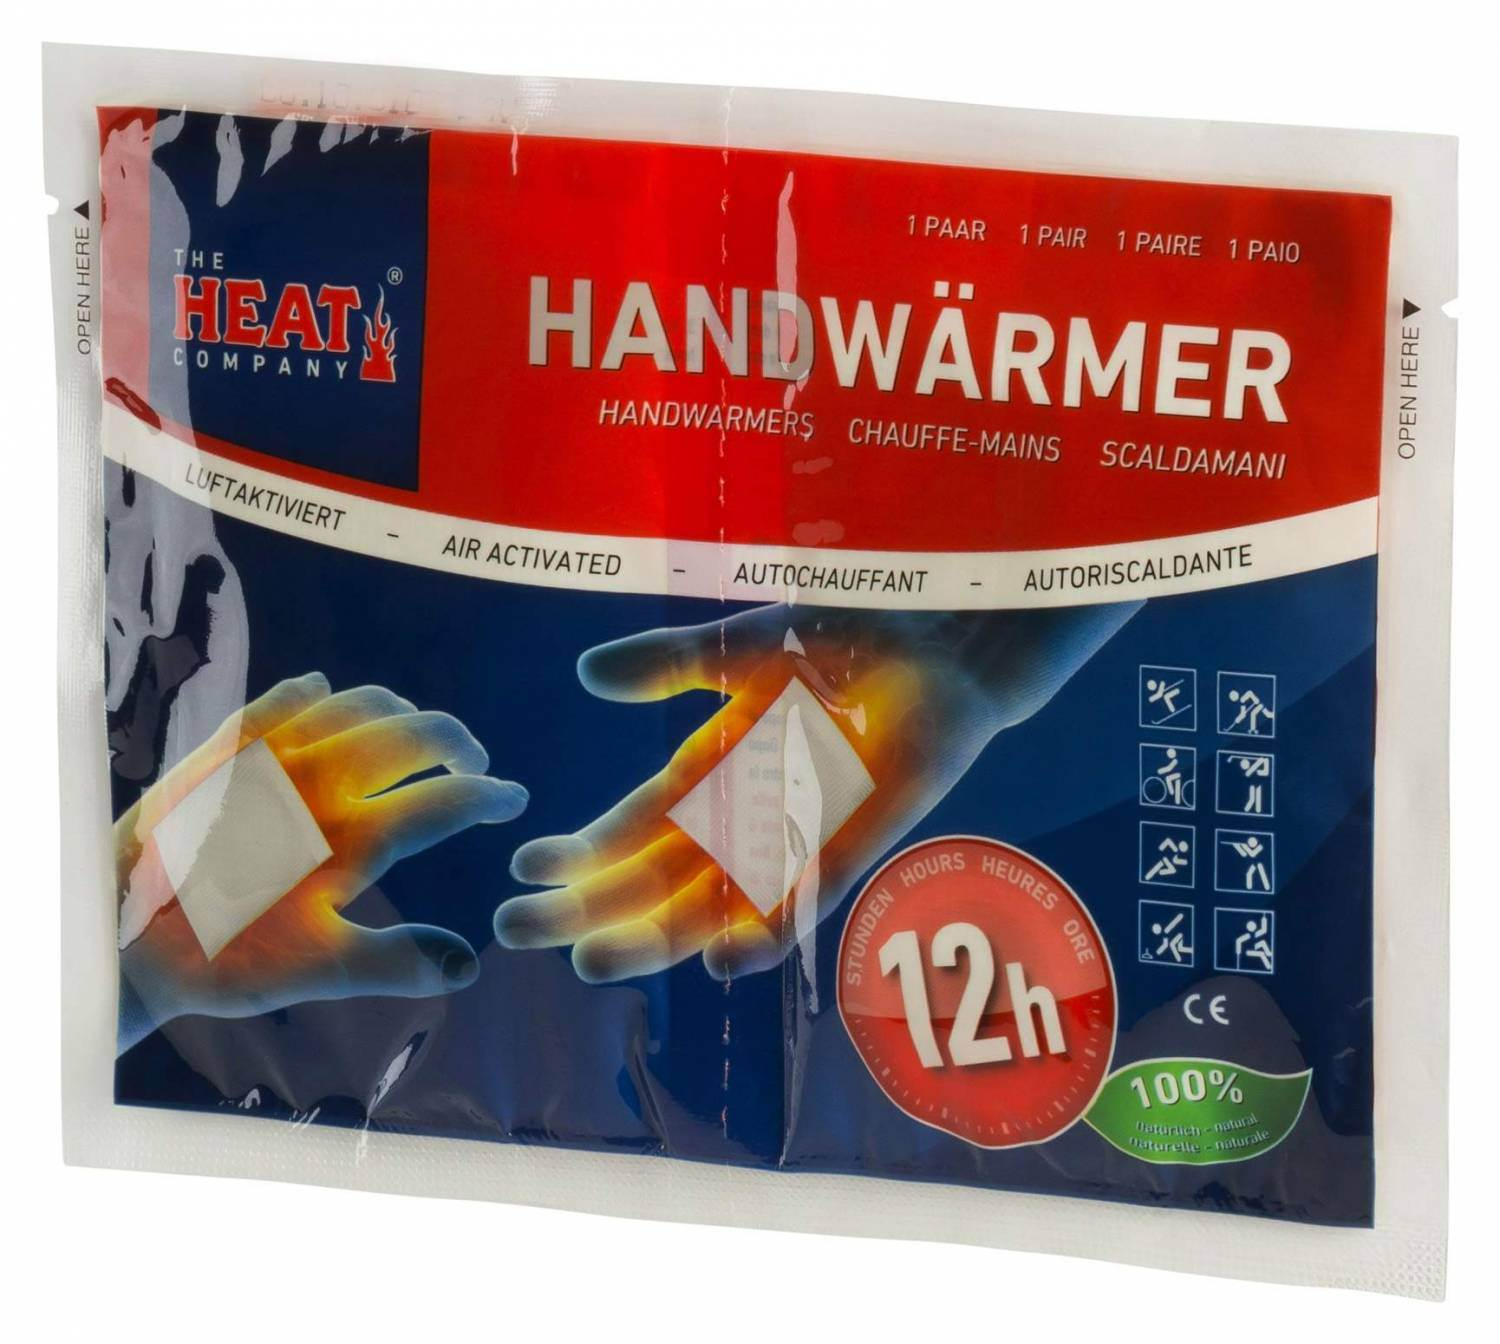 The Heat Company Handwärmer (Farbe: 001 neutral)